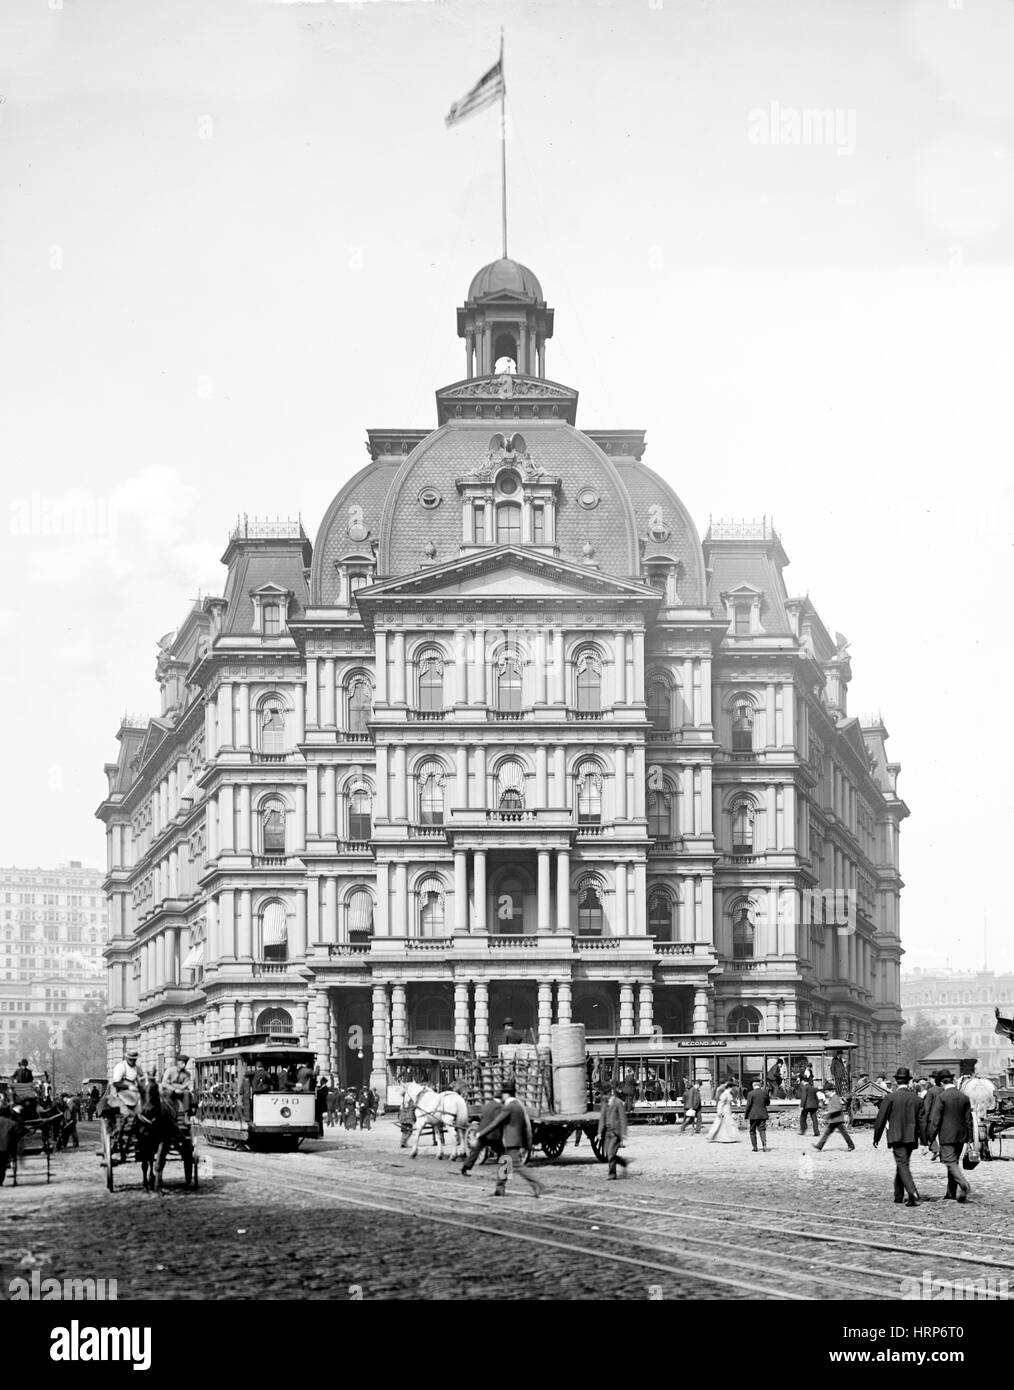 NYC, City Hall Post Office and Courthouse, 1900s - Stock Image